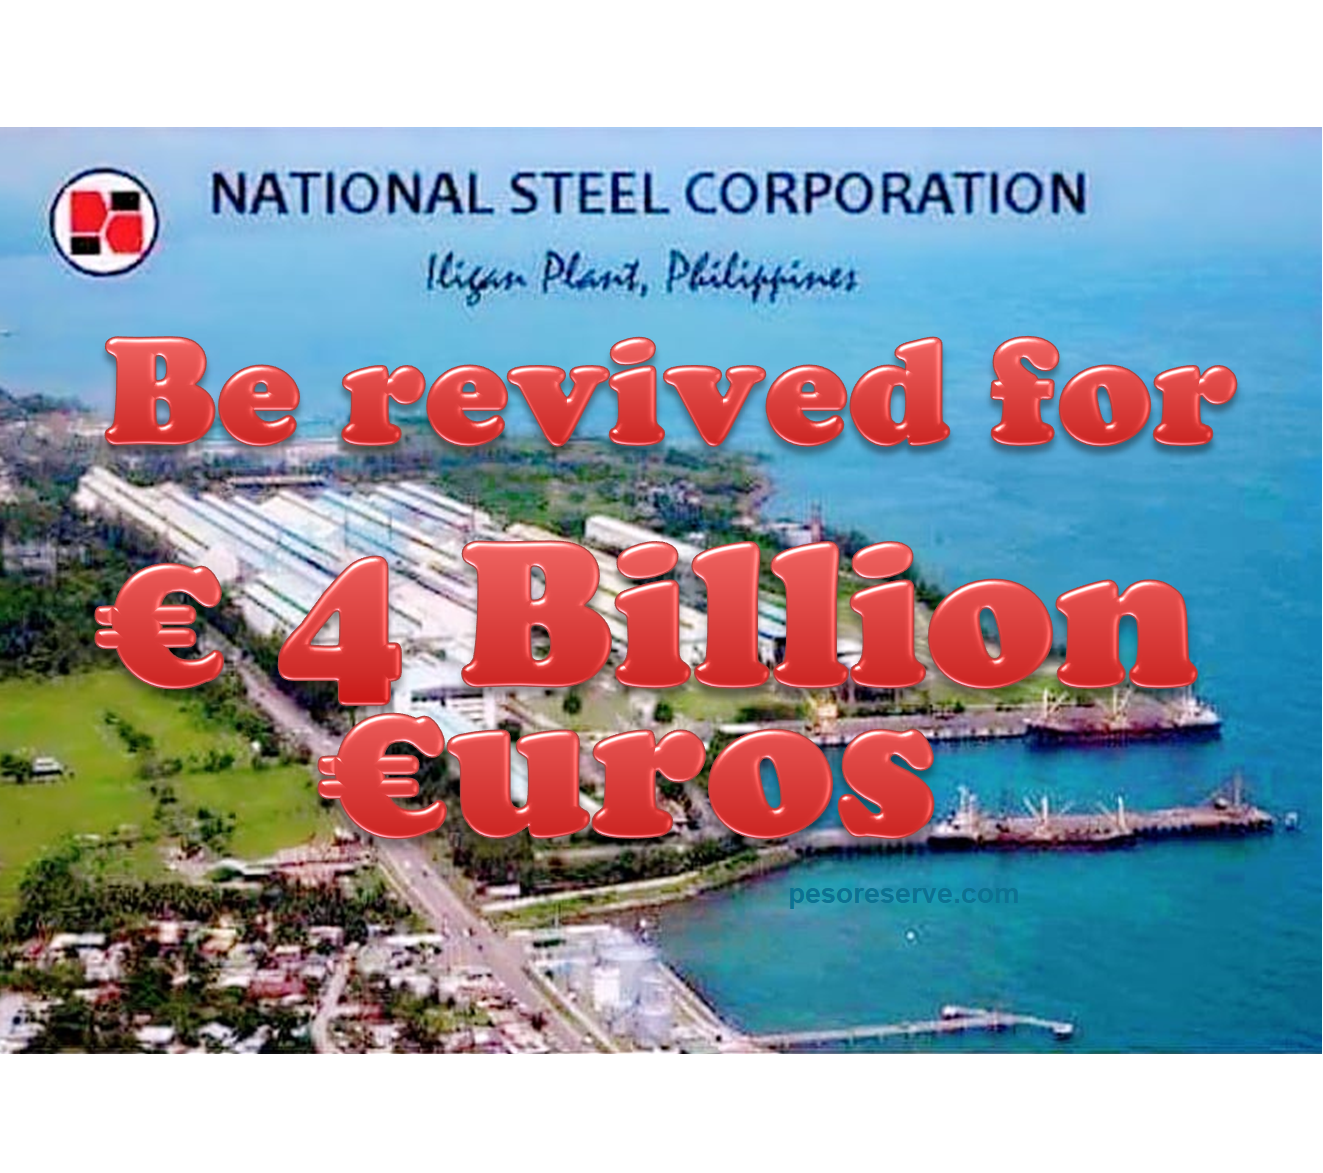 National Steel Corporation (NSC) would be revived for 4 Billion Euros